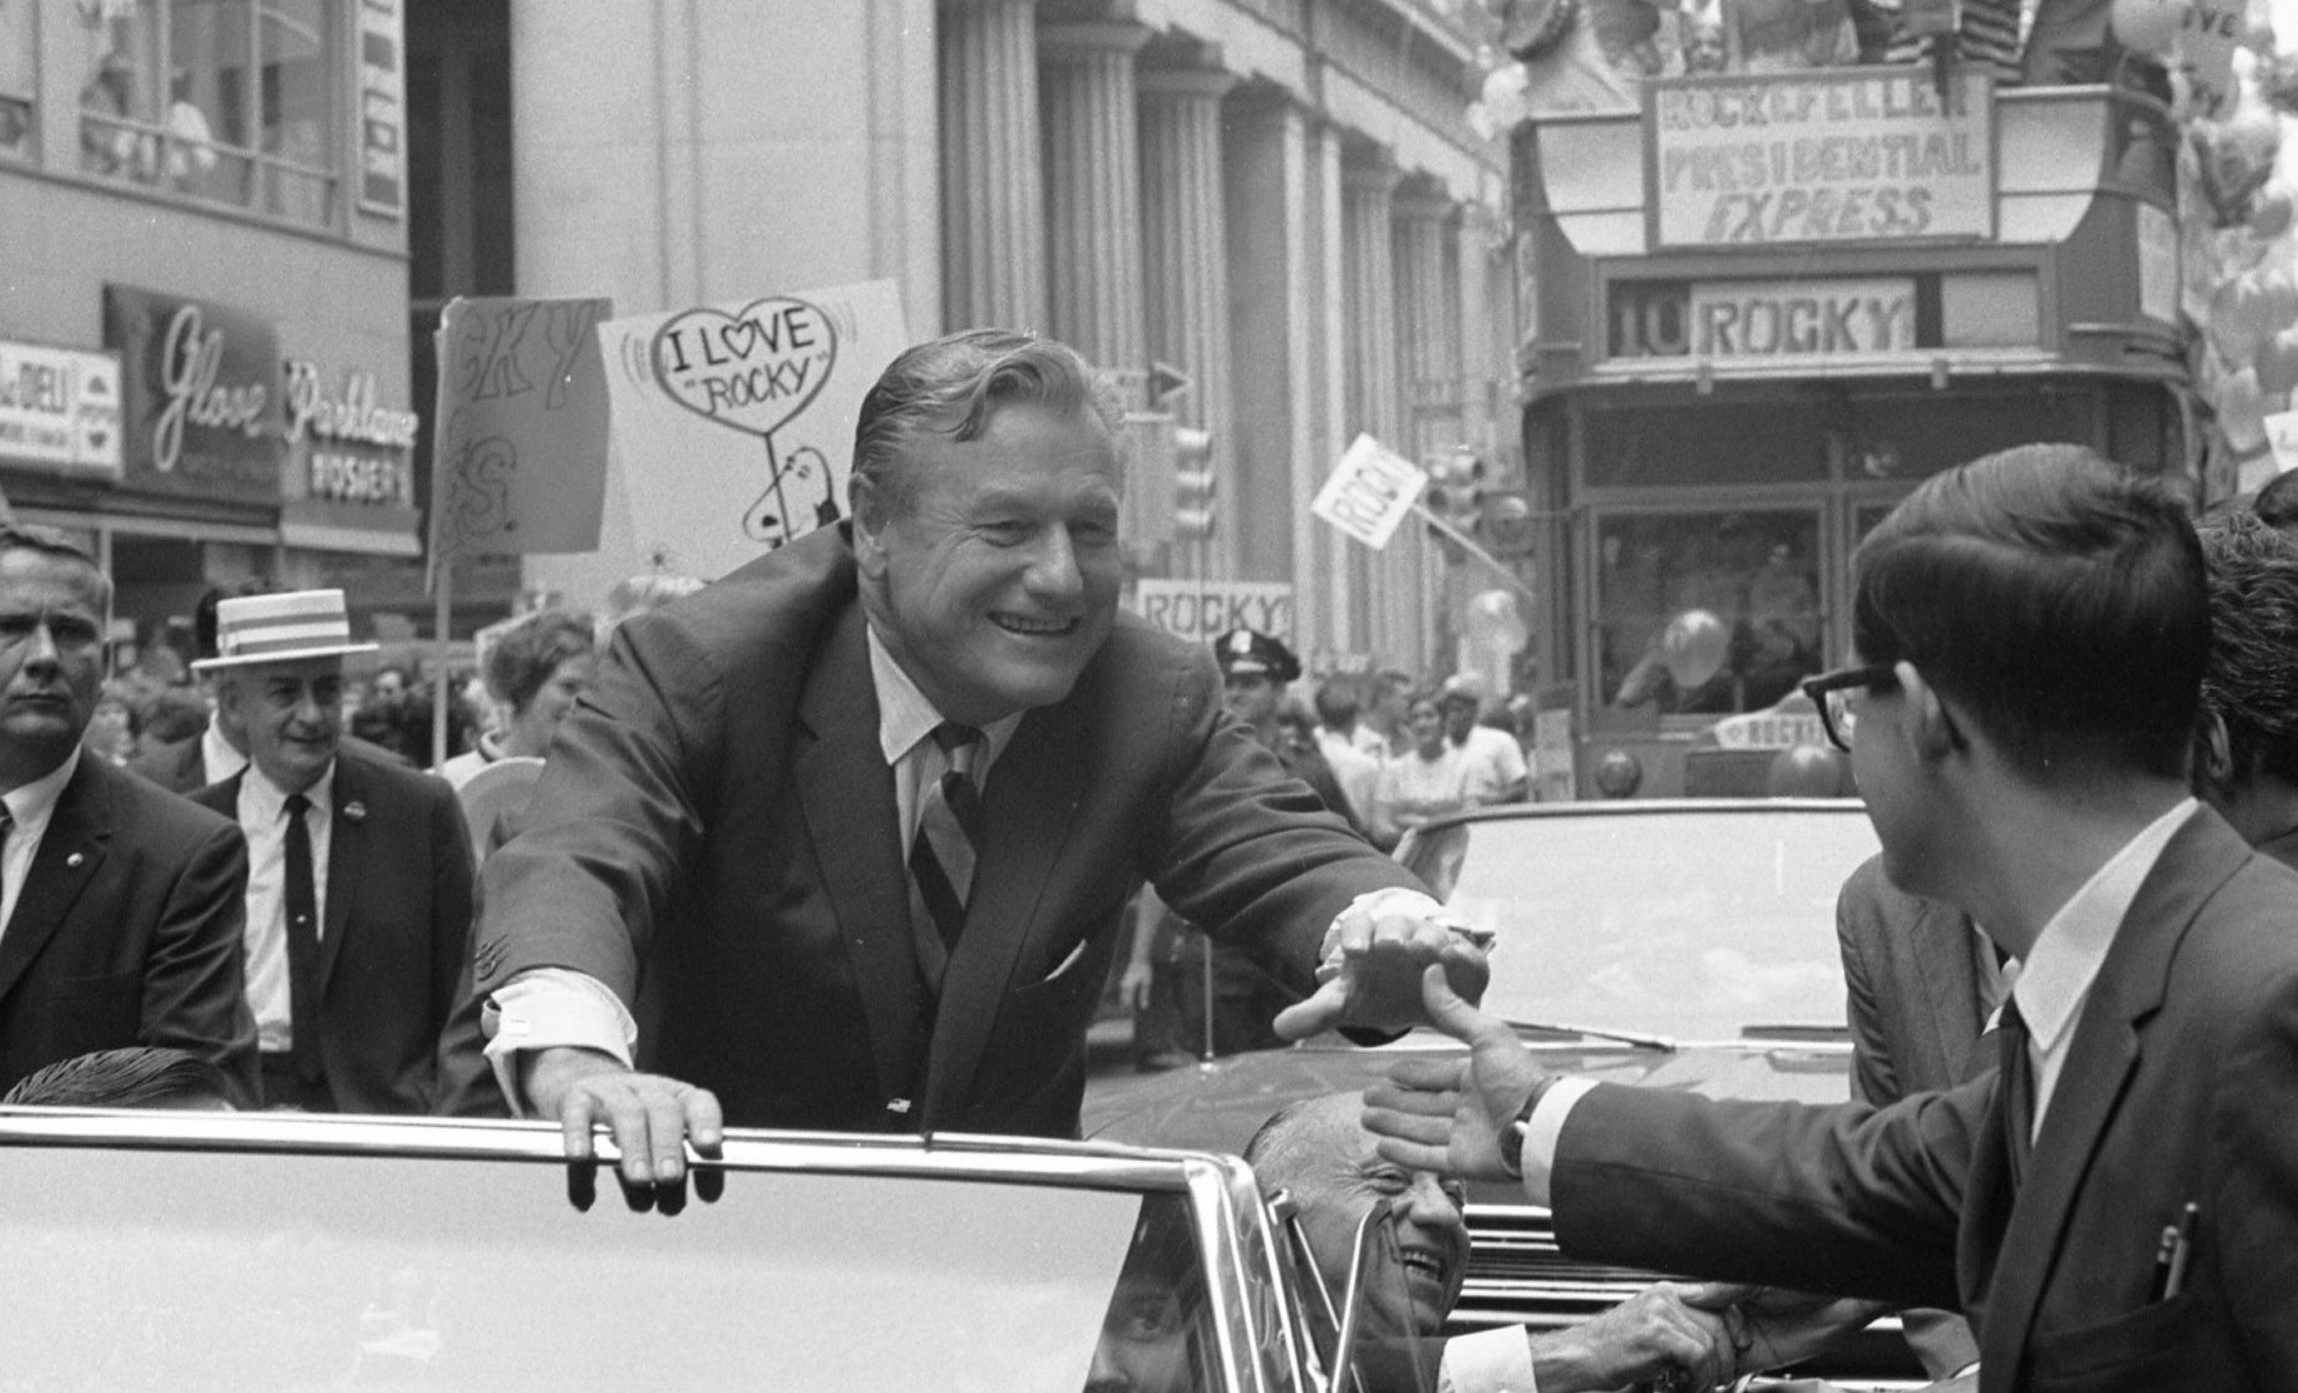 New York Gov. Nelson Rockefeller, riding in a car on Wall Street, campaigns for the Republican presidential nomination in 1968. (Library of Congress)